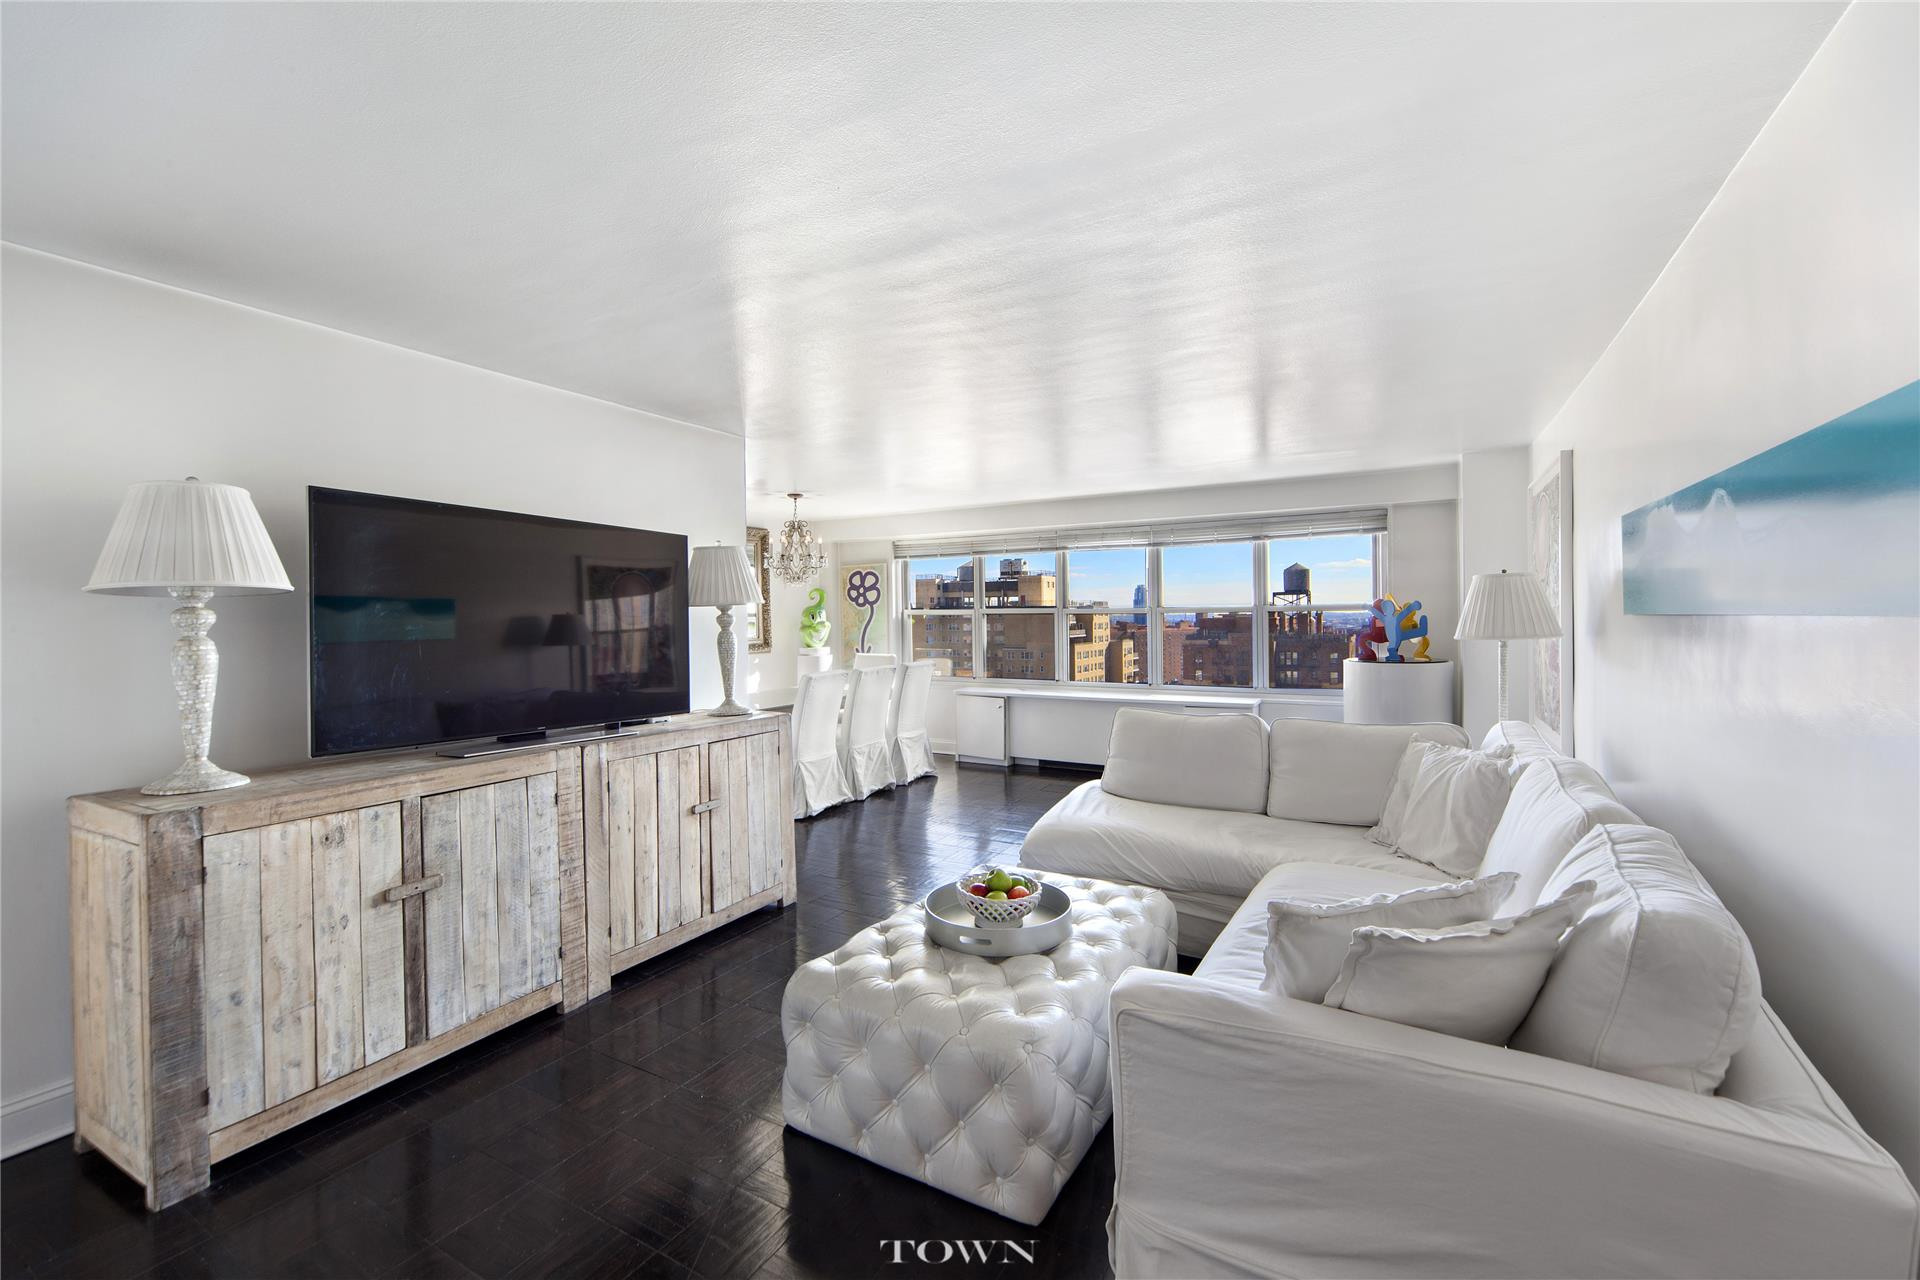 Co-op for Sale at Gramercy Park Towers, 205 Third Avenue, #20-A 205 Third Avenue New York, New York 10003 United States